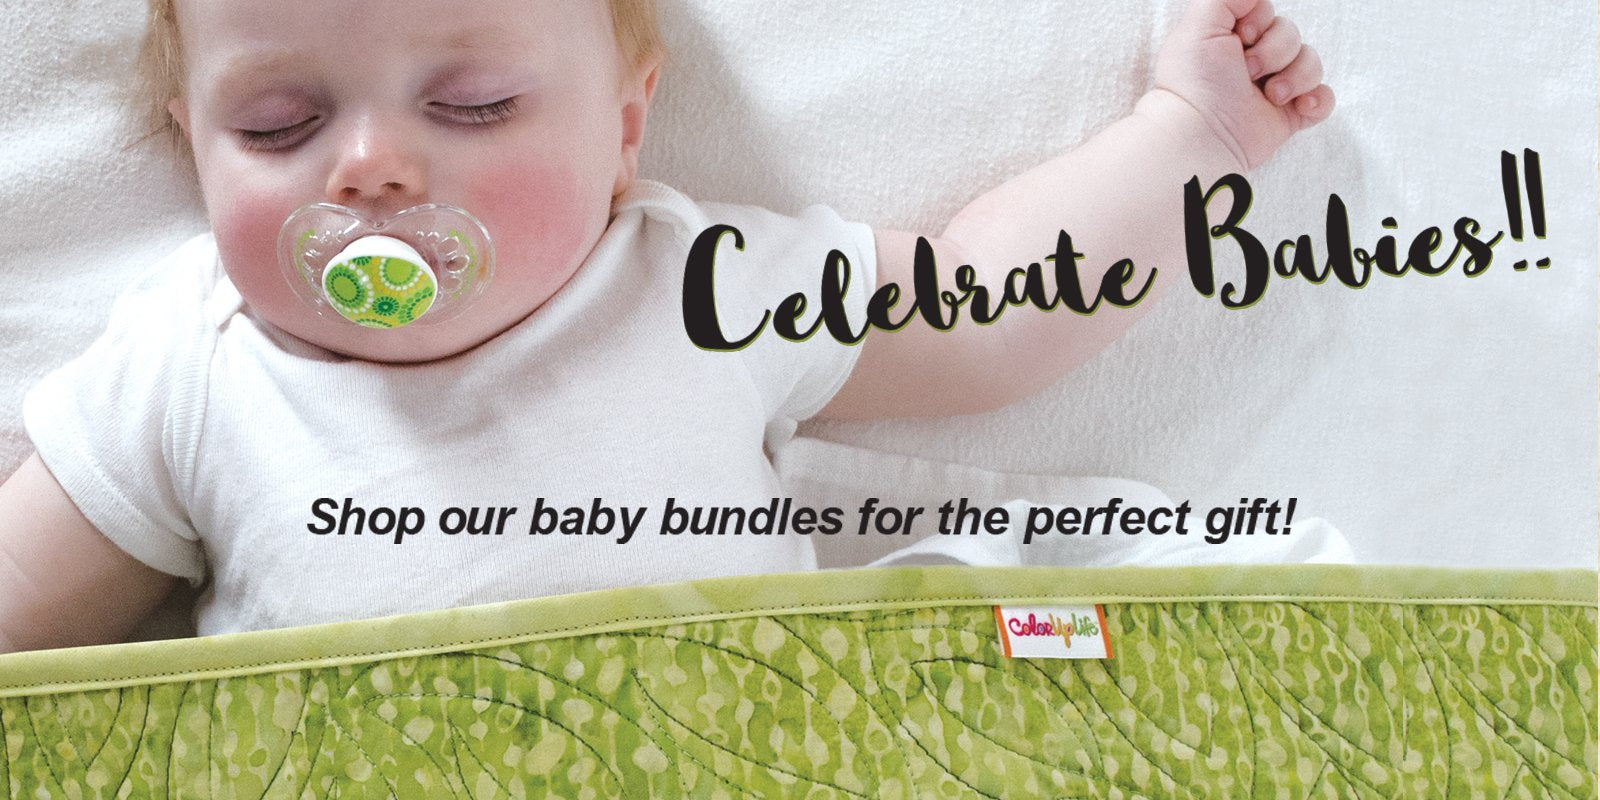 Shop ColorUpLife Baby Bundles